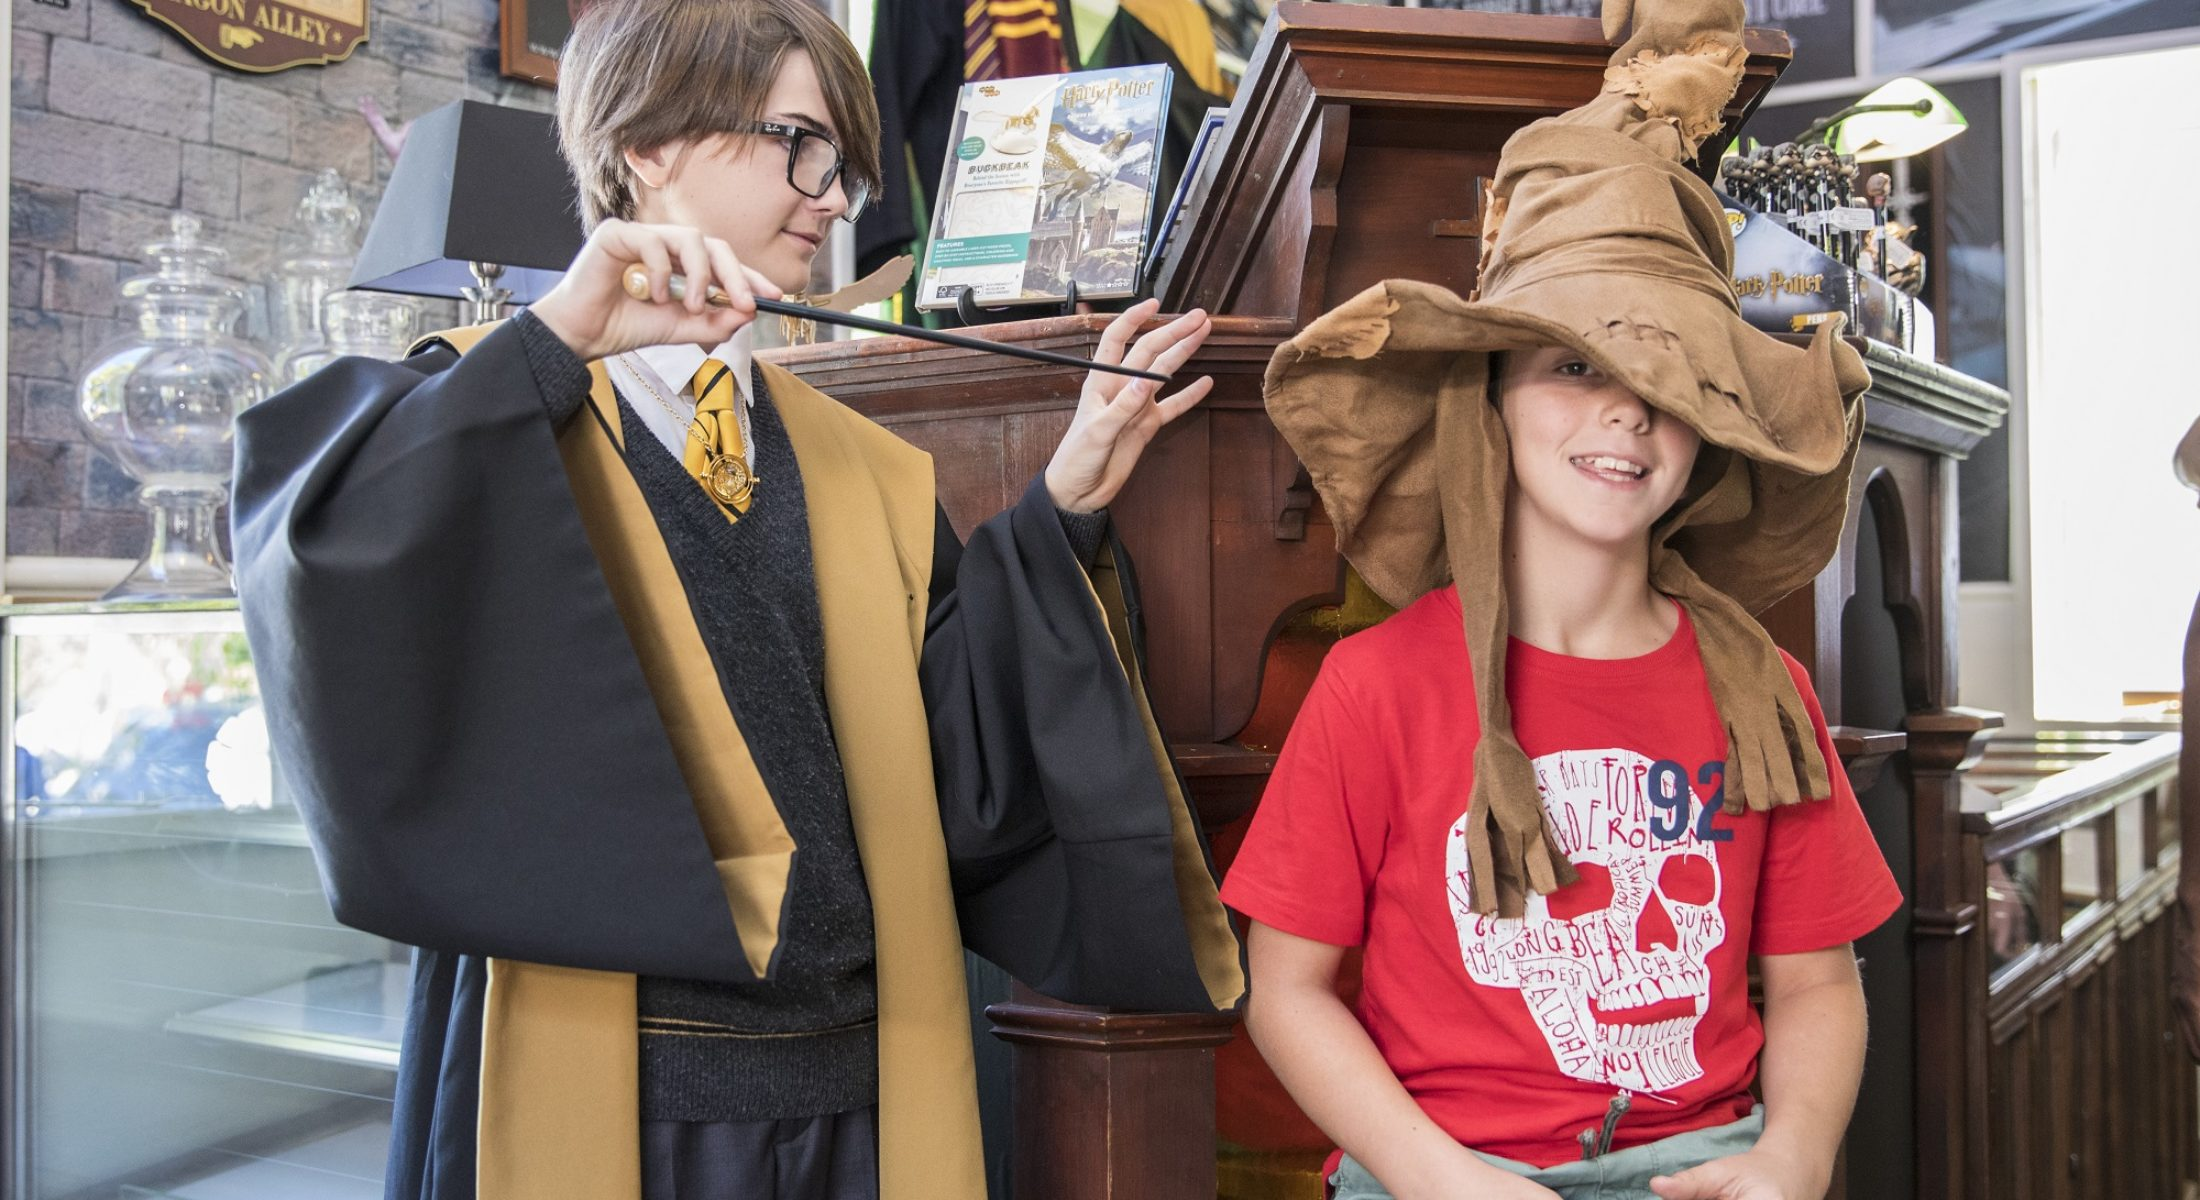 Harry Potter The Store Of Requirement Samford Sorting Hat Visit Moreton Bay Region